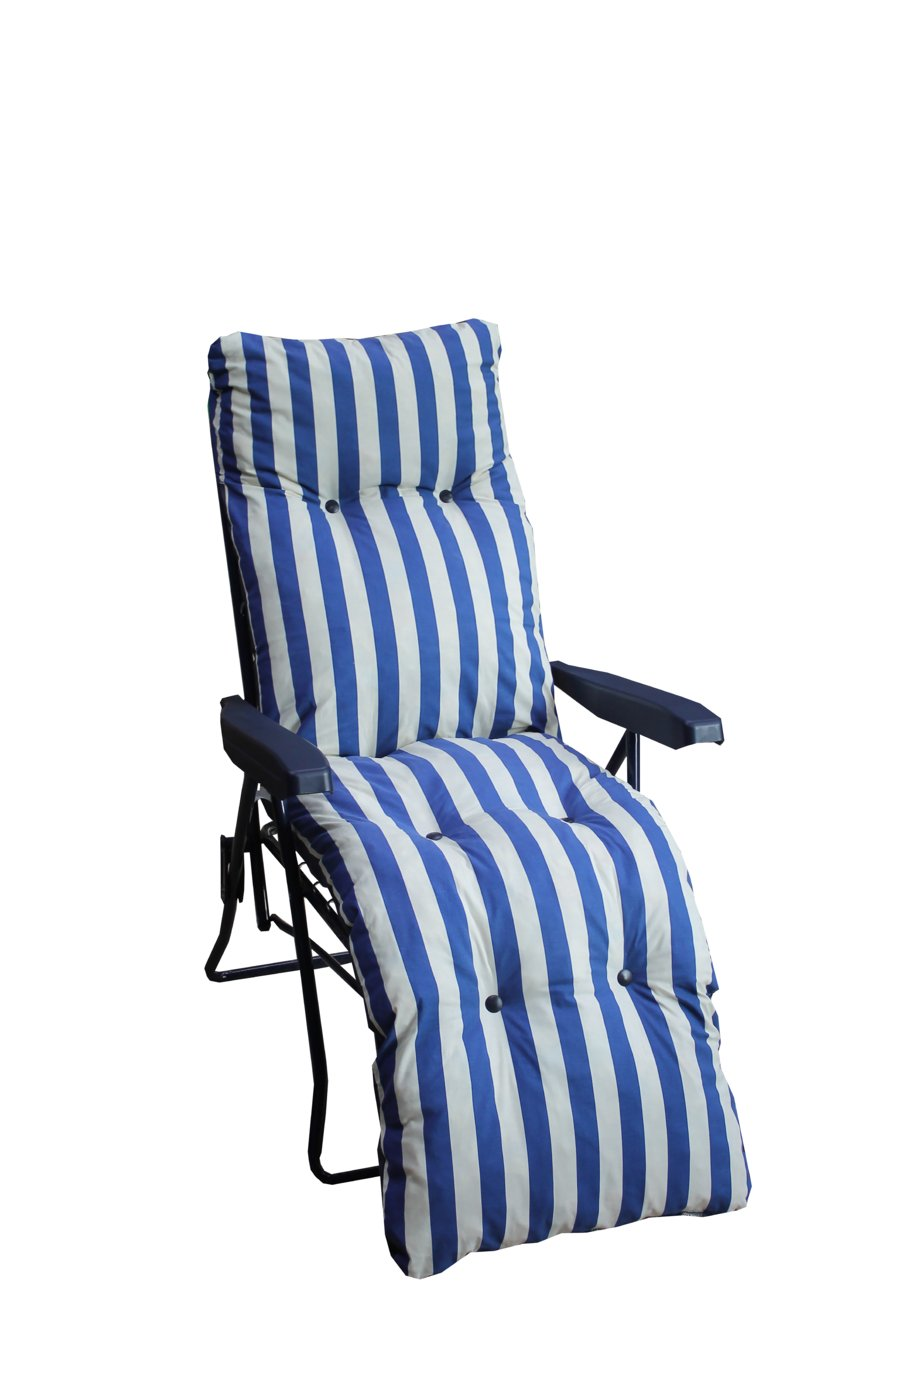 Striped Foldable Multi Position Sun Lounger With Cushion